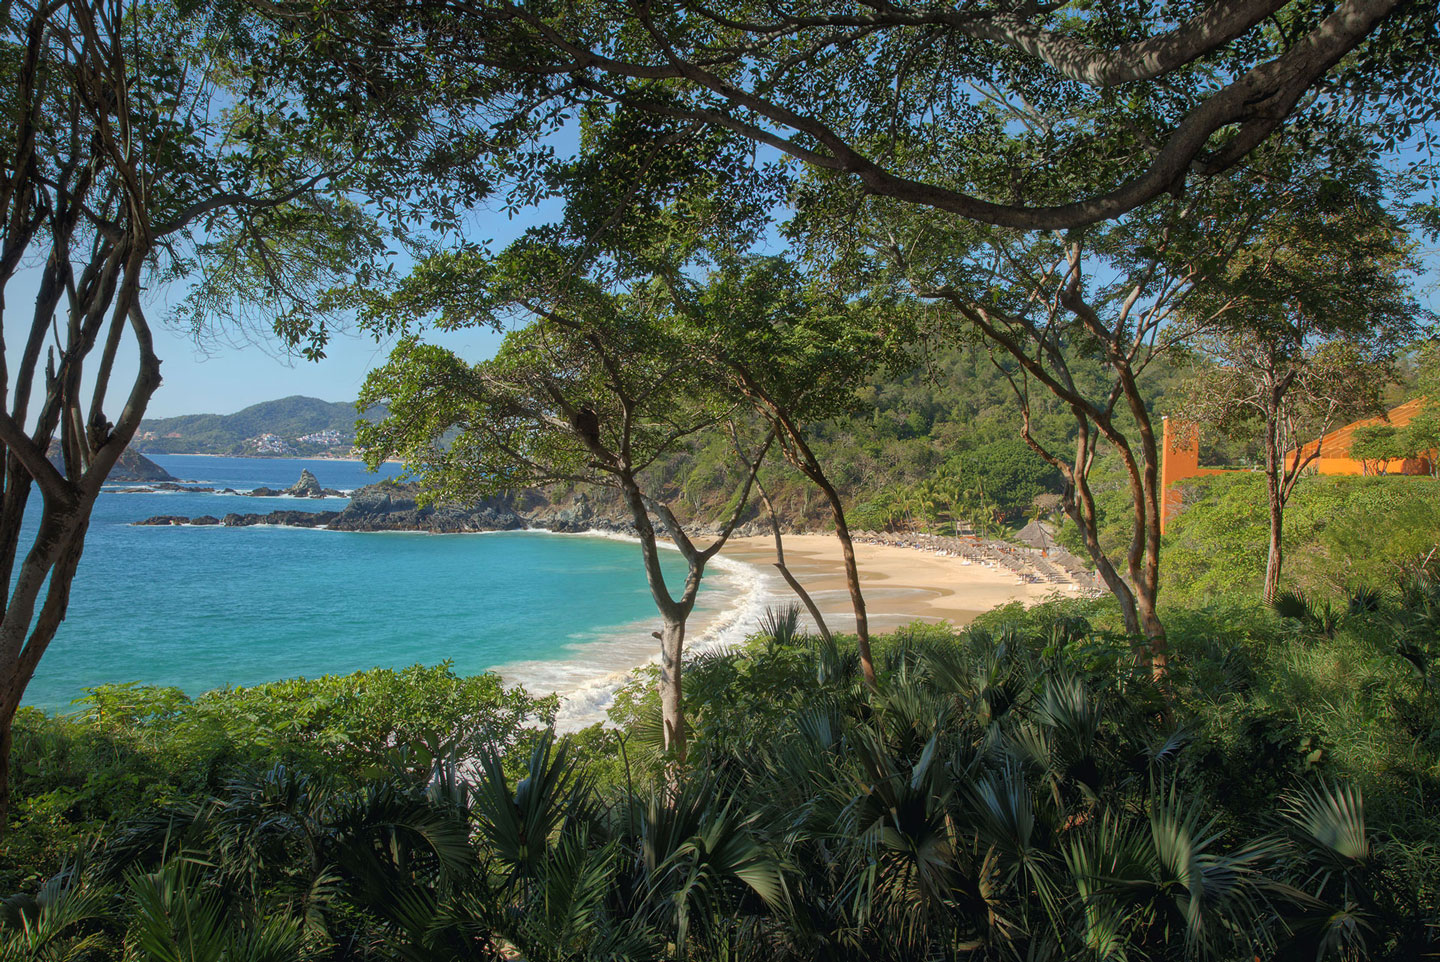 Beach at Hotel Las Brisas Ixtapa